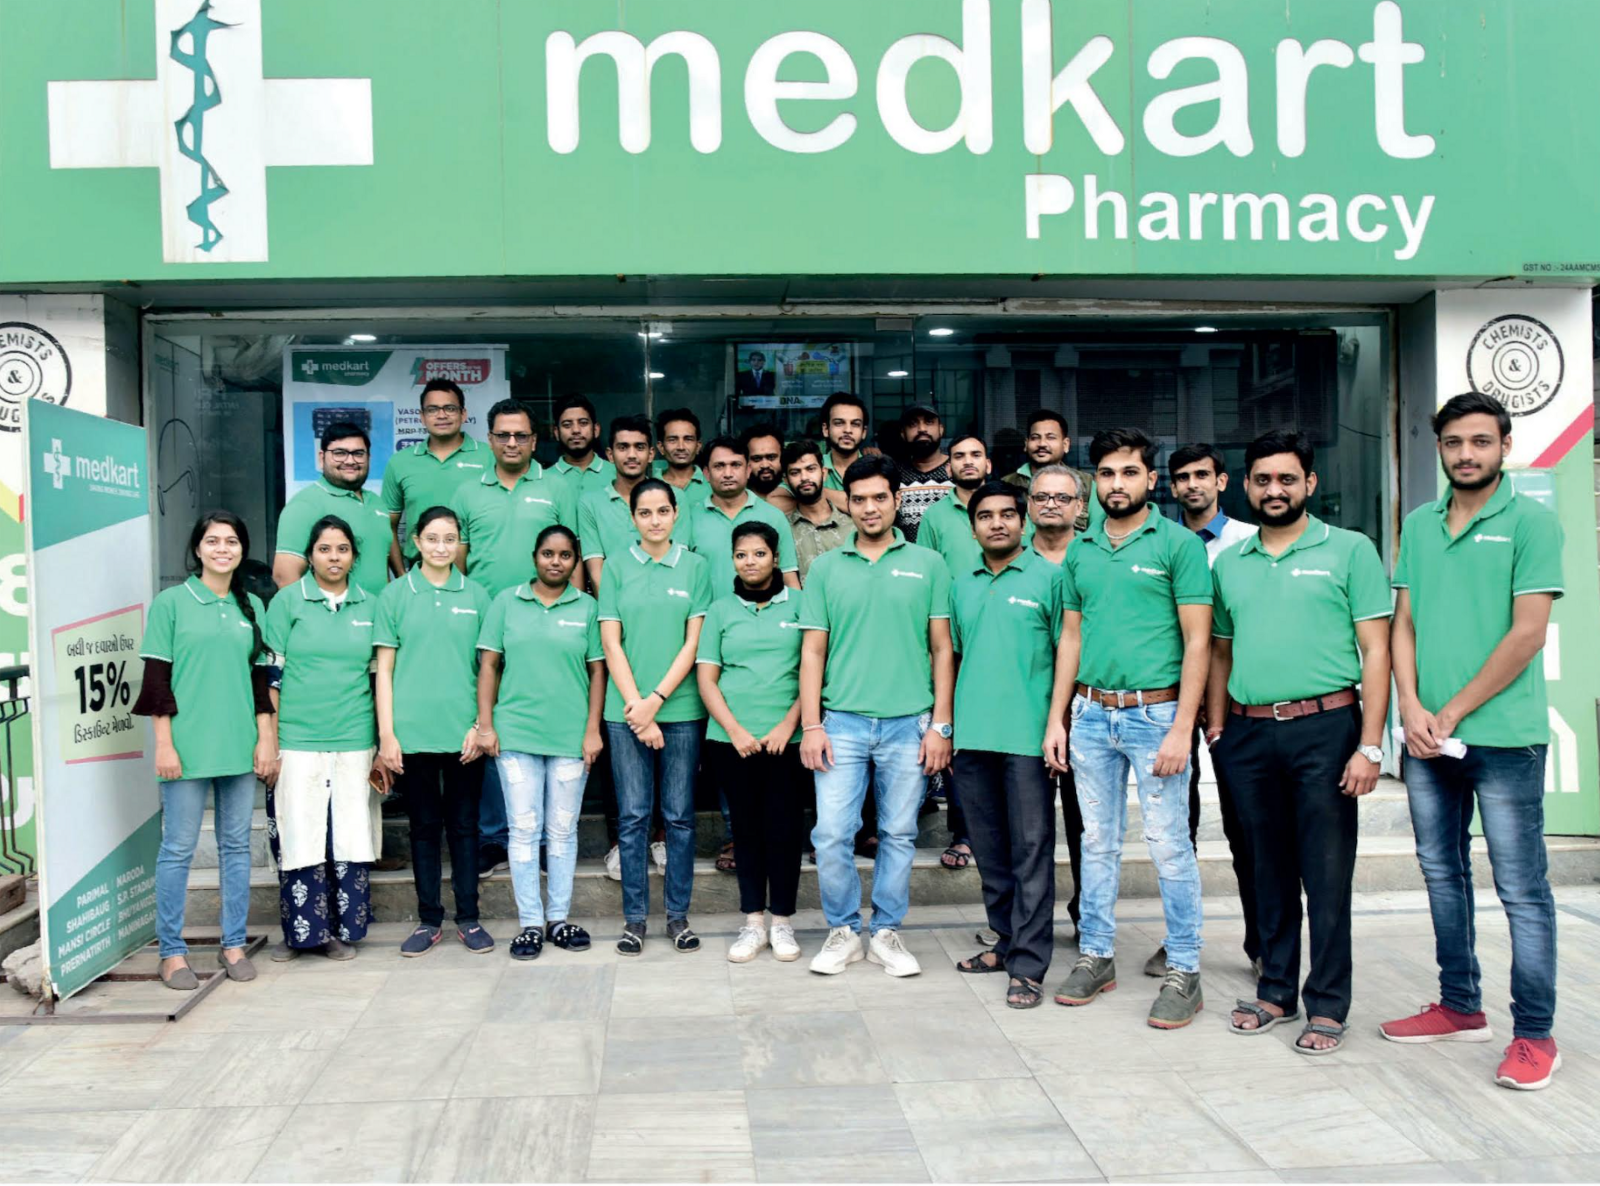 Generic medicines and the part they play - an interview with Medkart Pharmacy founder Ankur Agarwal